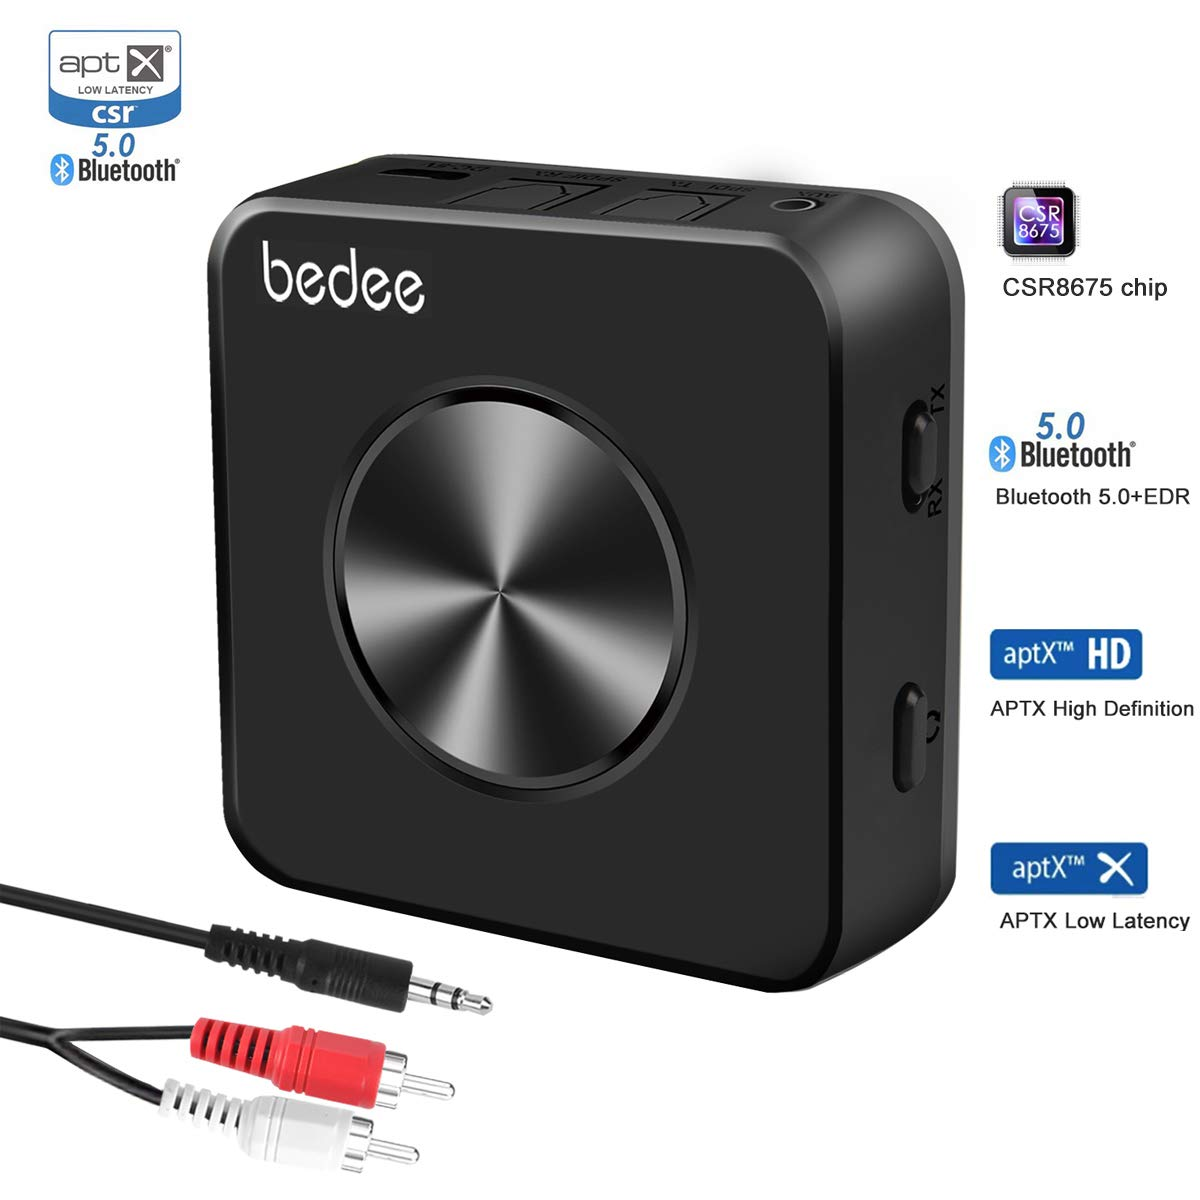 Bluetooth 5.0 Transmitter Receiver, bedee 2-in-1 Audio Adapter with Digital Optical TOSLINK and 3.5mm AUX Adapter, Dual-Link, aptx HD and aptX Low Latency for TV, PC, Car Stereo, Home Audio